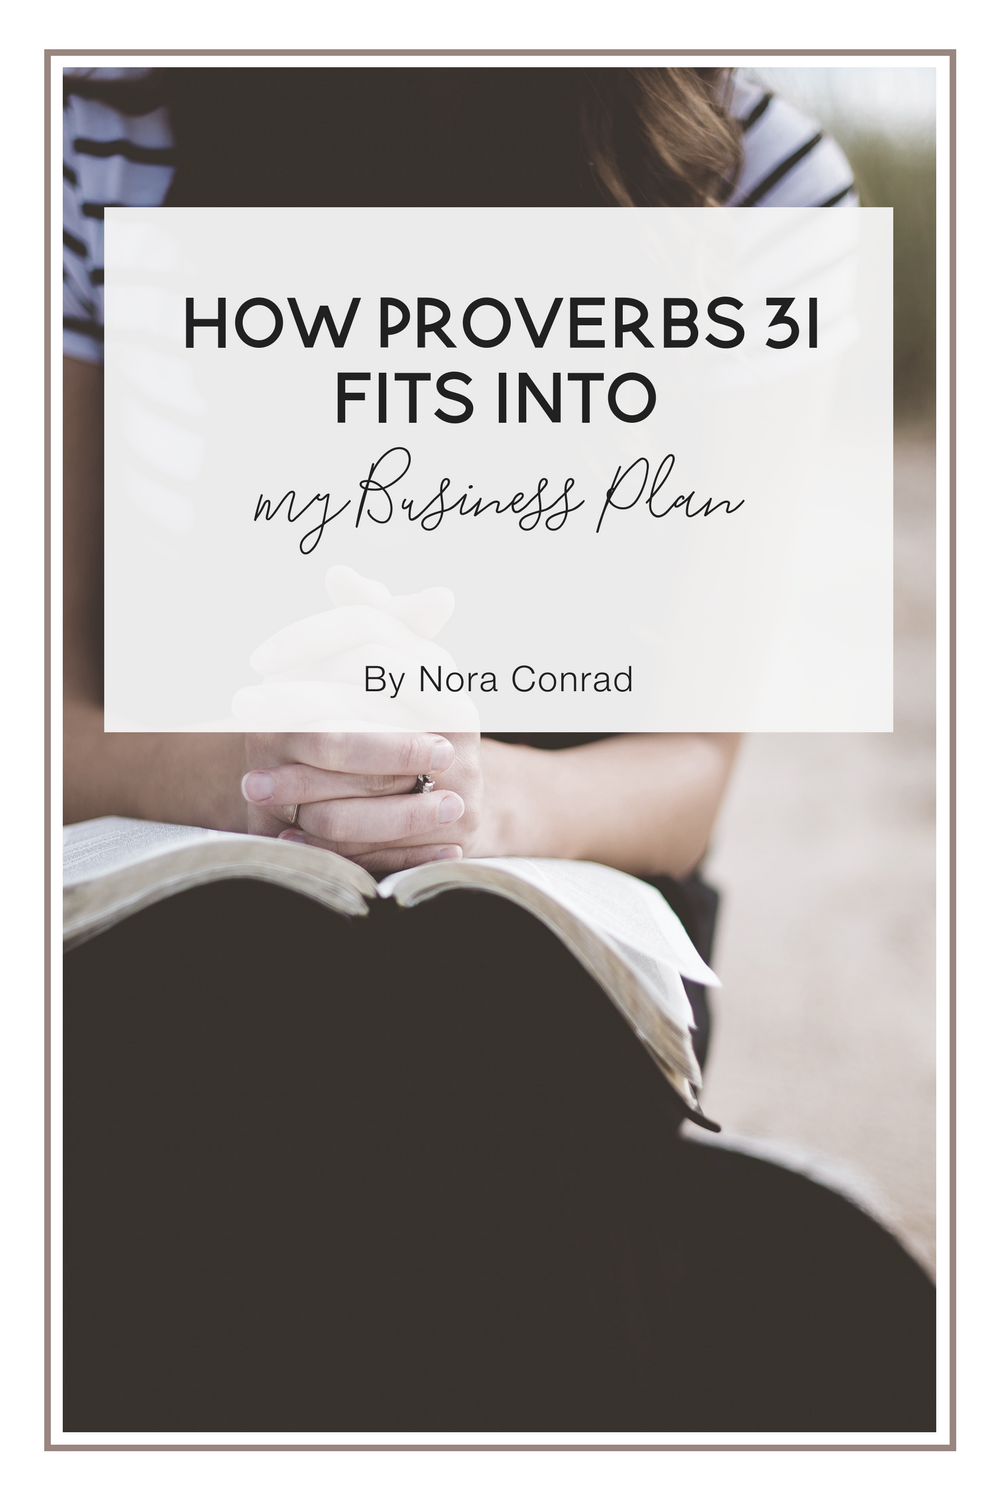 How Proverbs 31 Fits into my Business Plan